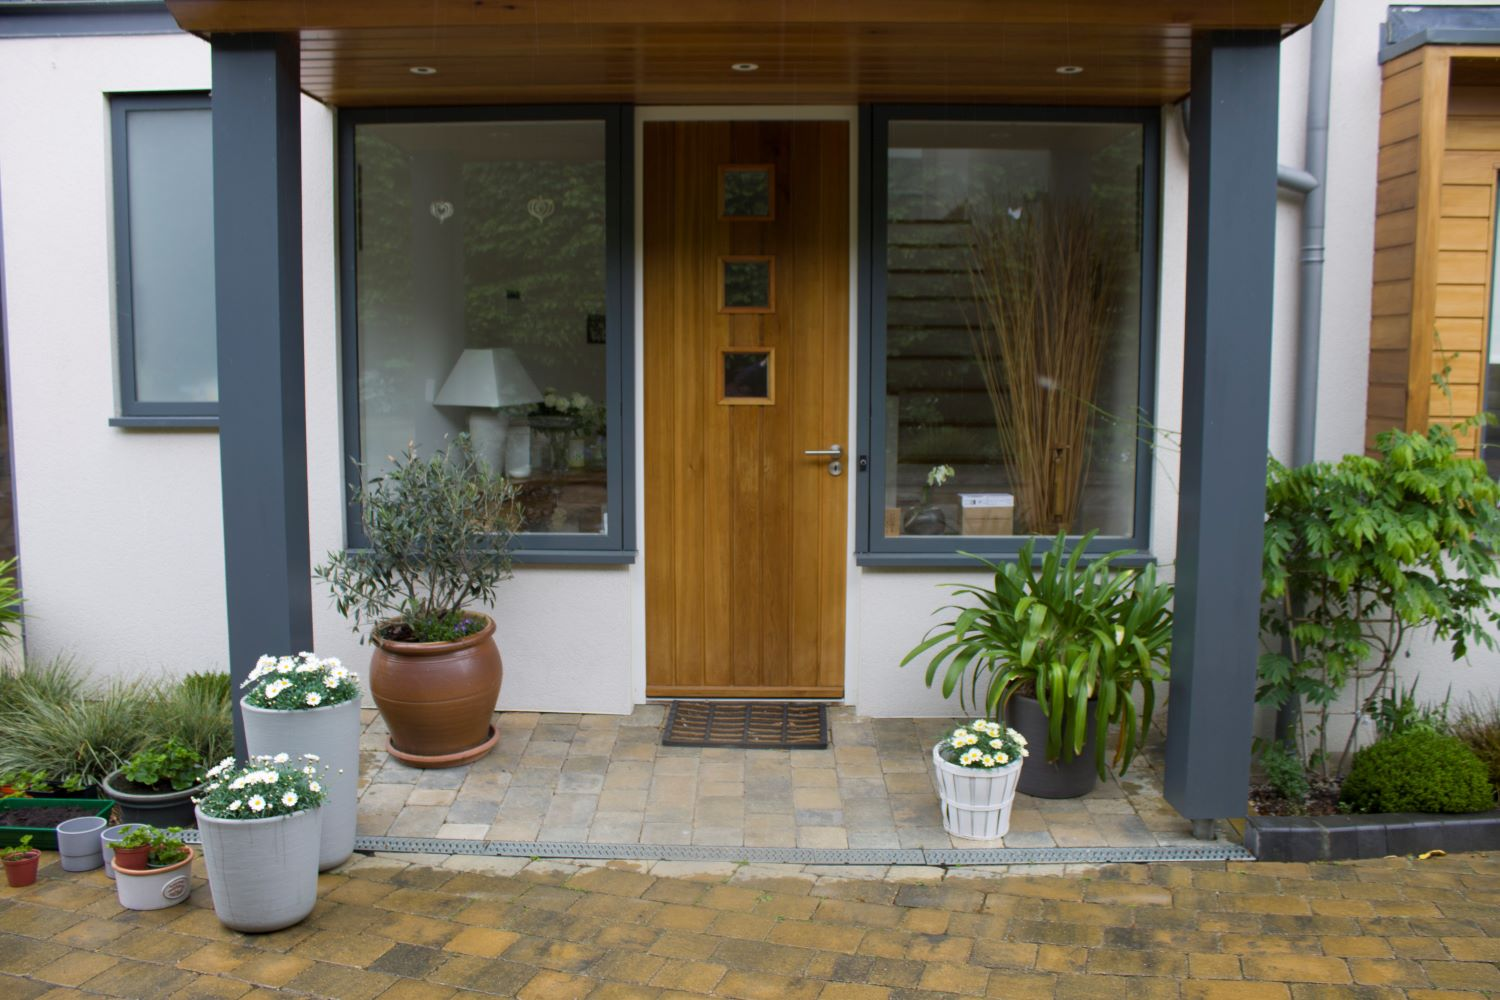 The front door framed by potted plants